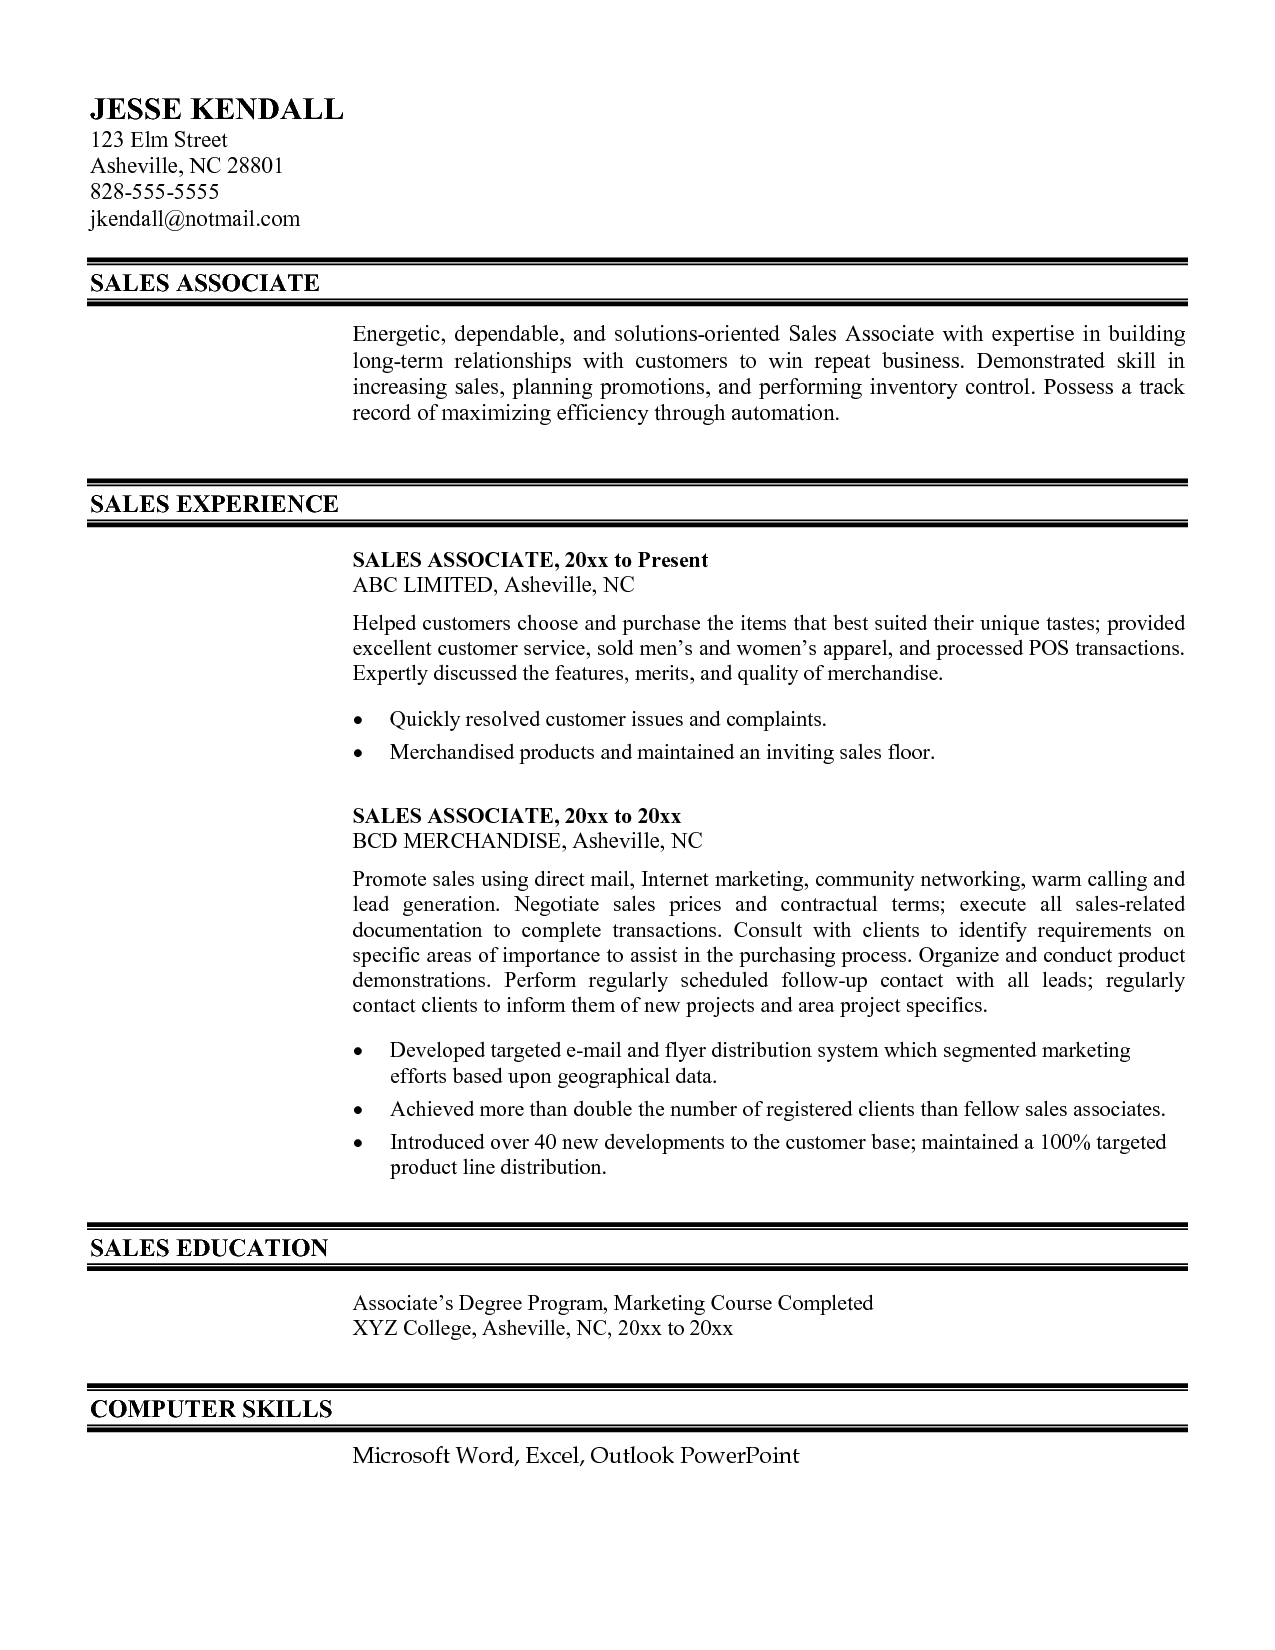 Marvelous Example Of Sales Associate Resume Retail Sales Associate Sample Resume  Resume Cv Cover Letter. Nice Look